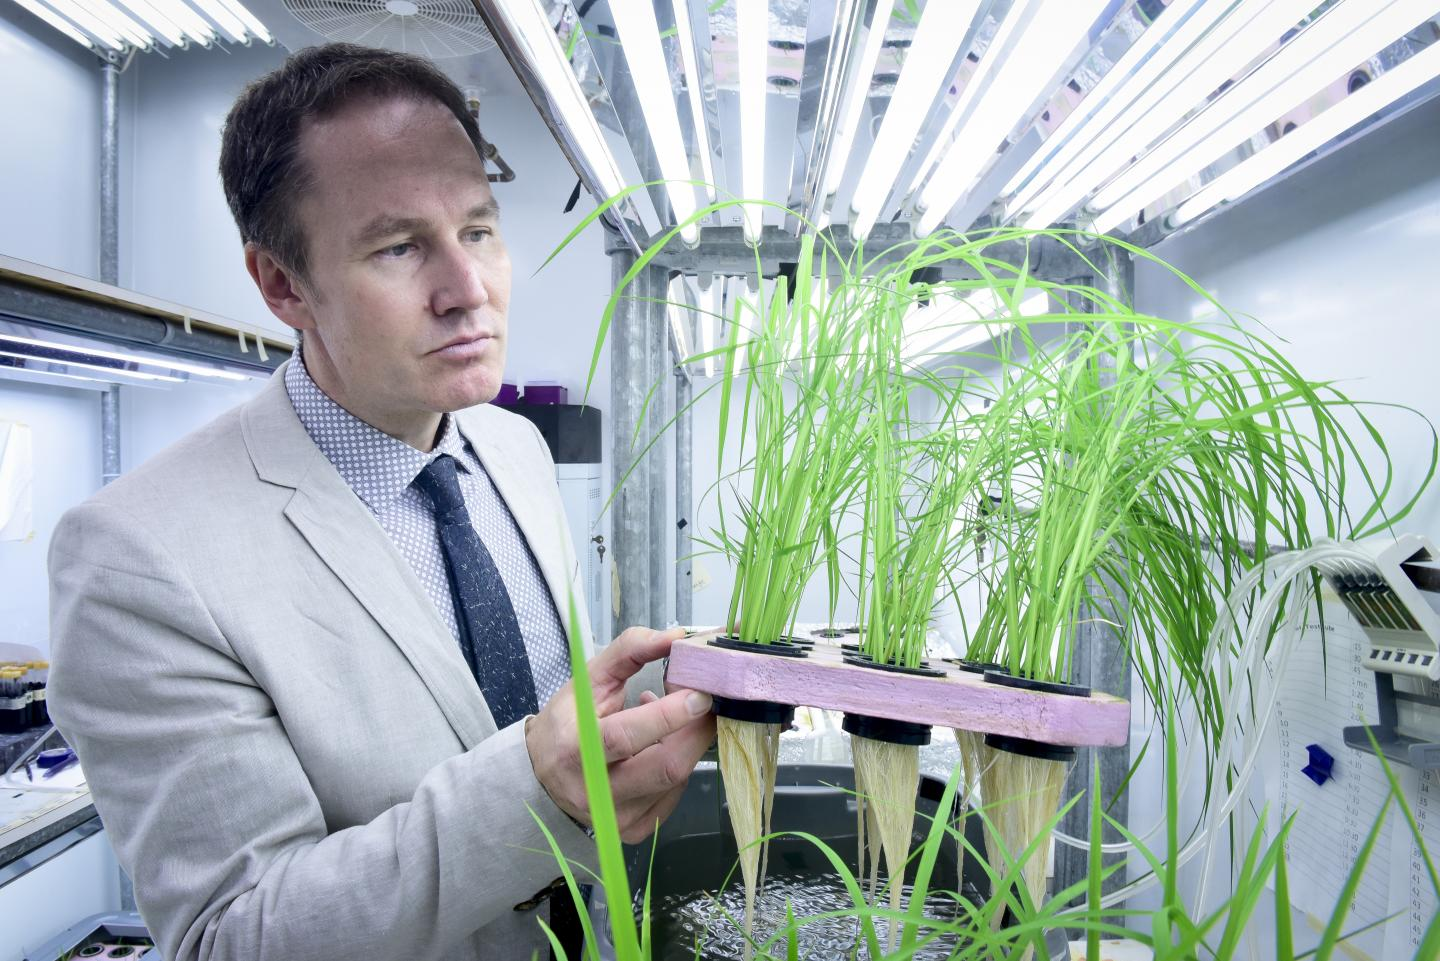 Identifying Rice Crops That Can Save Farmers Money and Cut Pollution